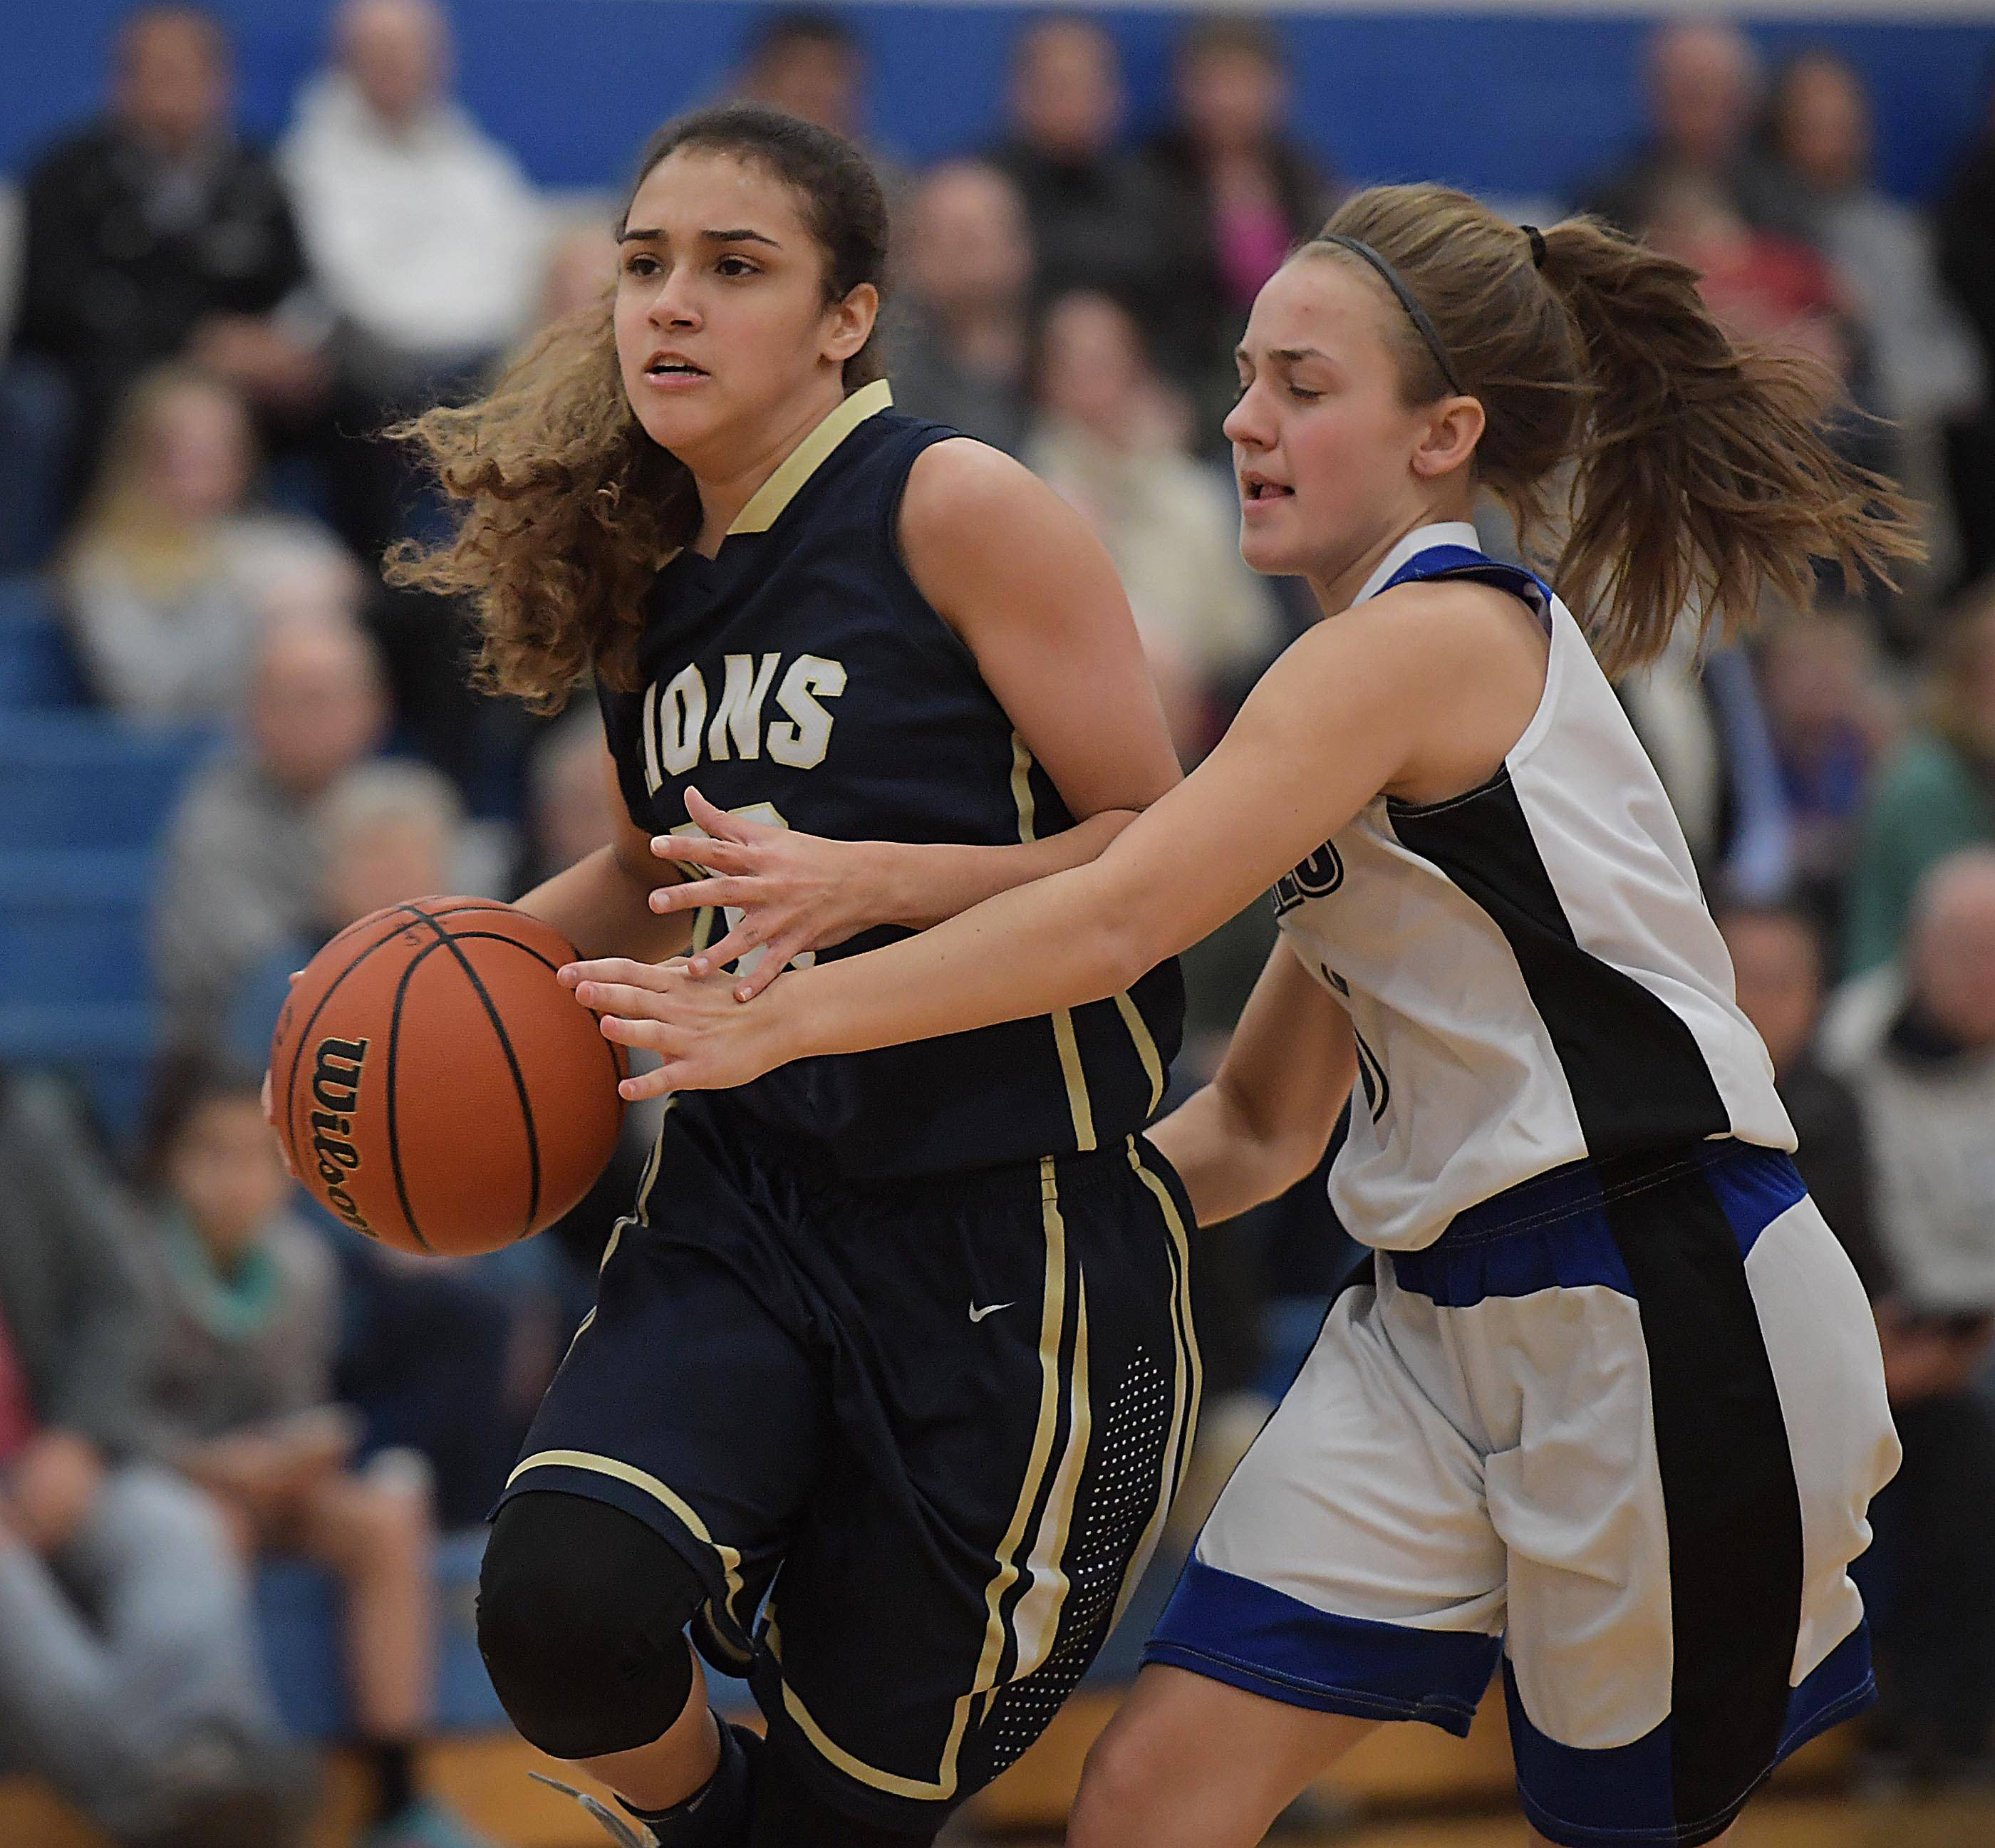 Rosary's Kristin Timko gets her hand on the ball as Harvest Christian's Alyssa Iverson runs past in a girls basketball game in Aurora Tuesday.